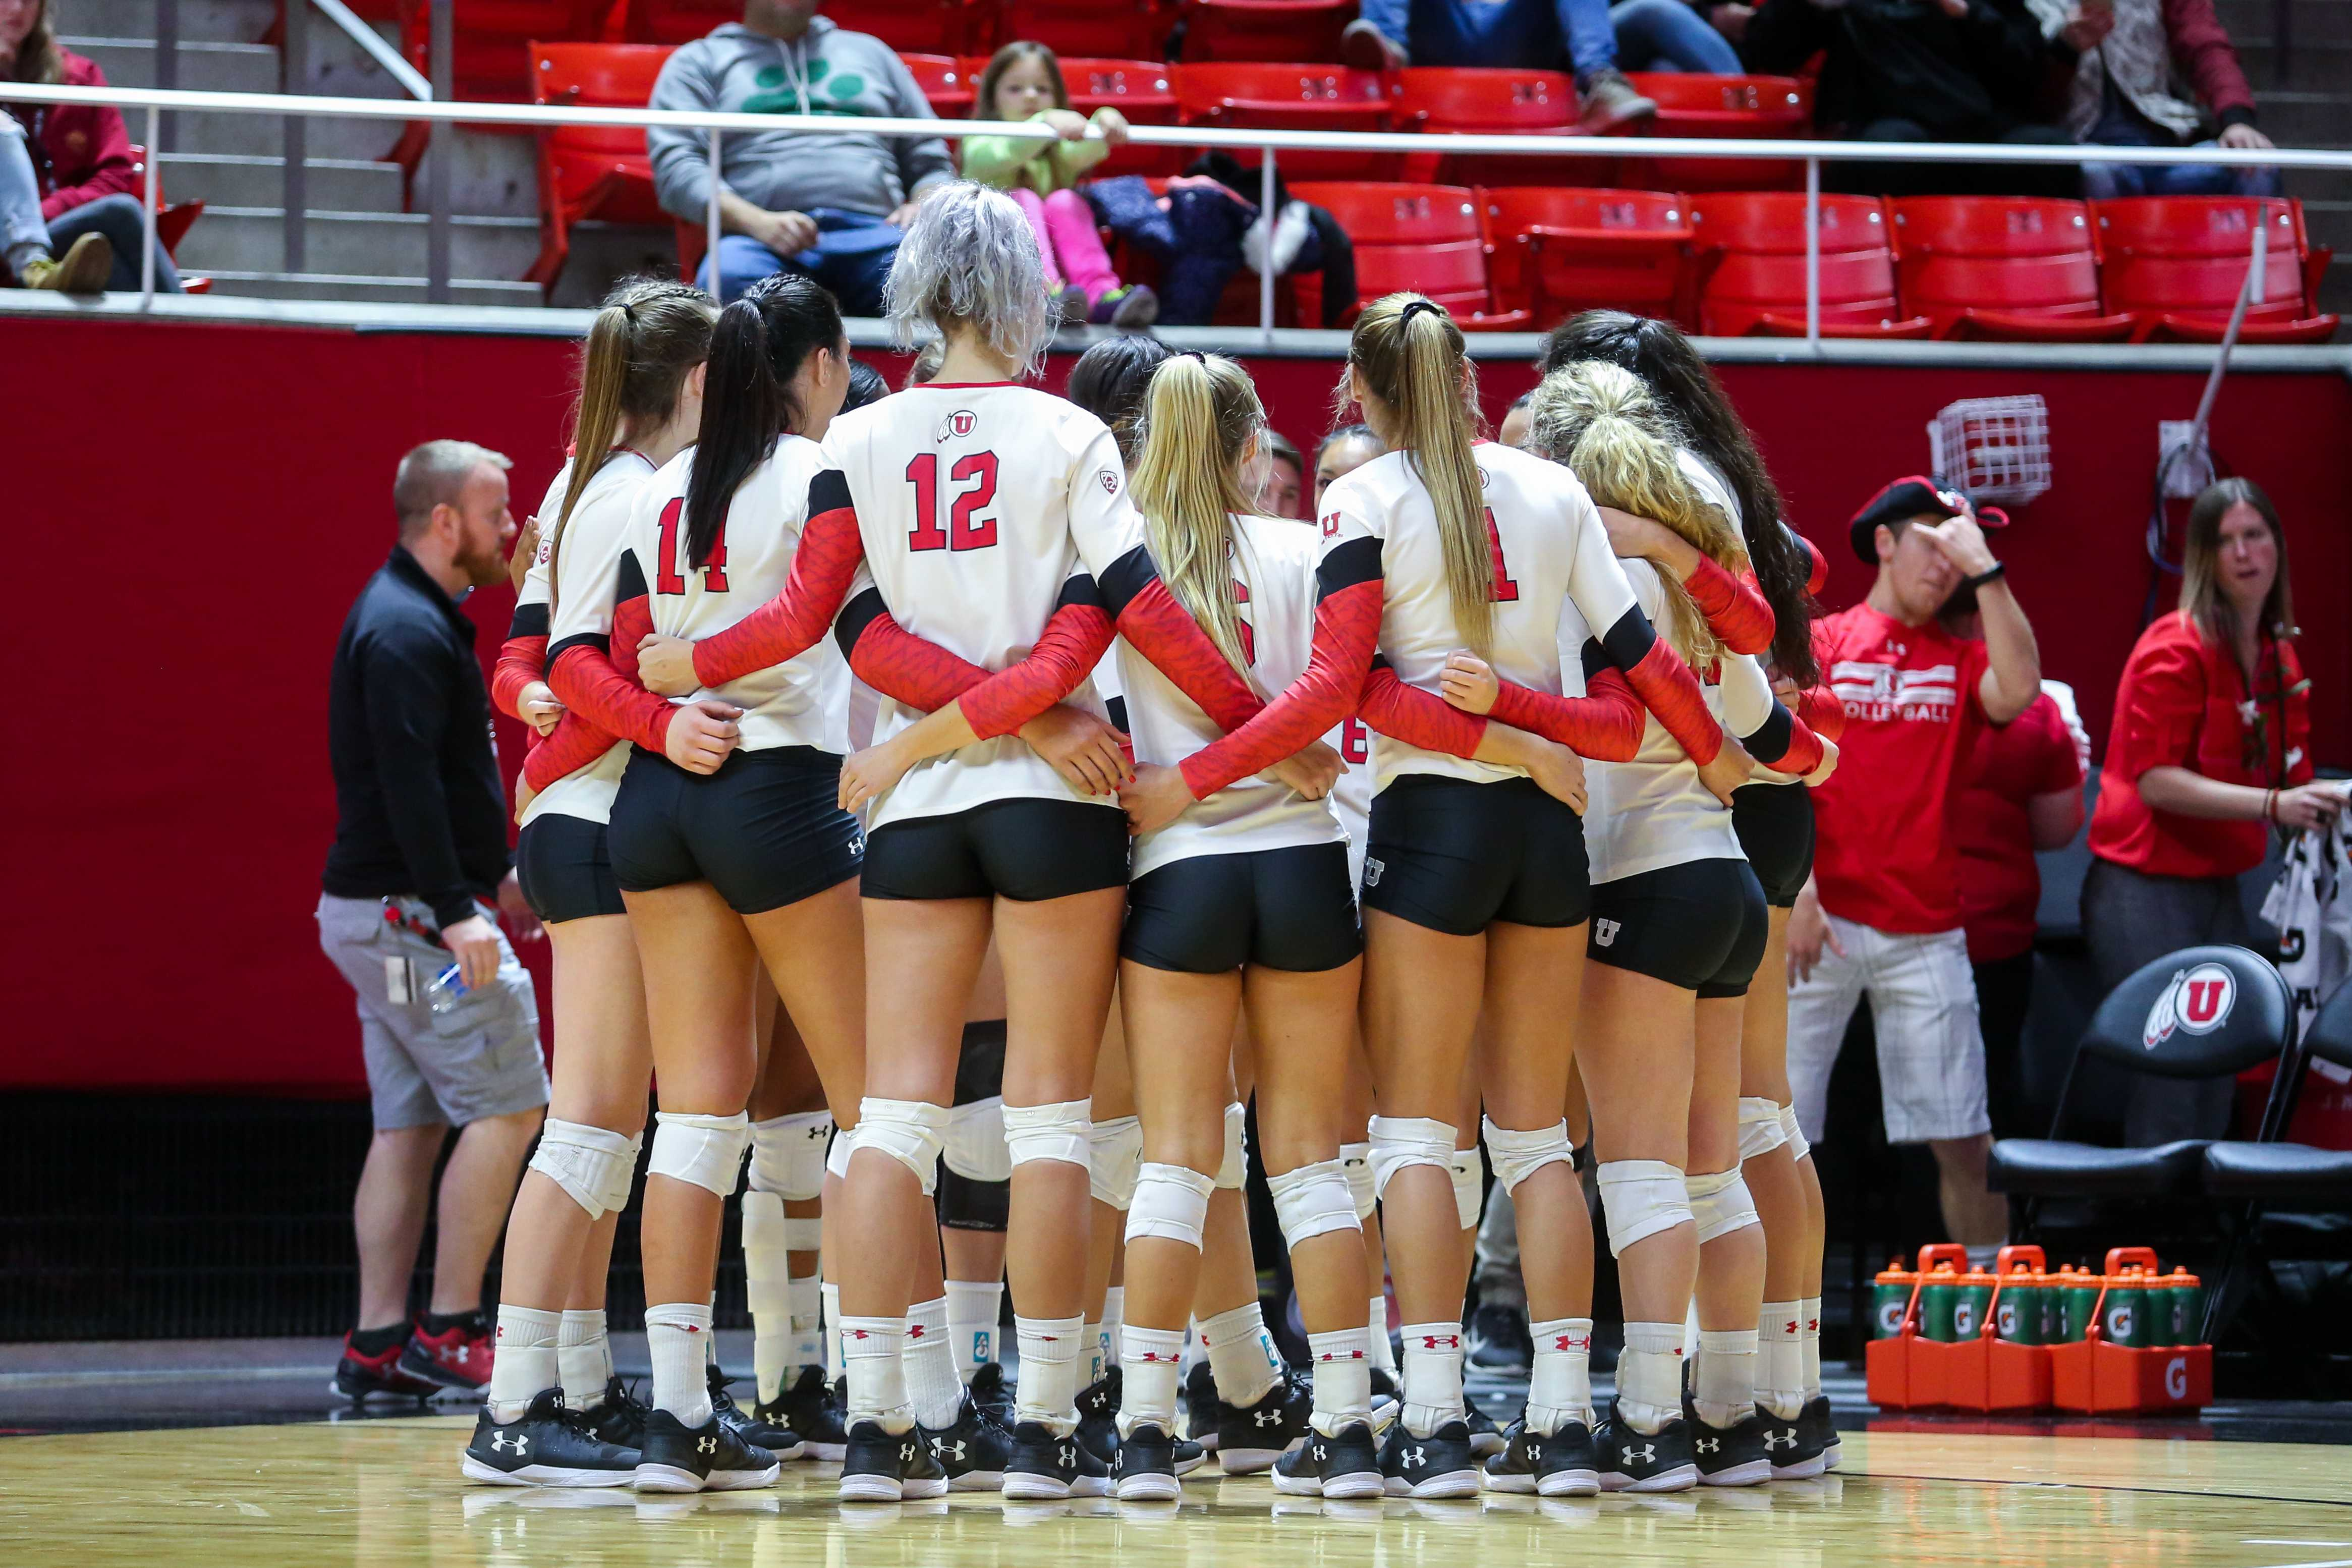 University of Utah Volleyball Team in the huddle in an NCAA Volleyball game vs. The Arizona Wildcats in Jon M. Huntsman Center in Salt Lake City, UT on Saturday, Nov. 18, 2017.  (Photo by Curtis Lin/ Daily Utah Chronicle)